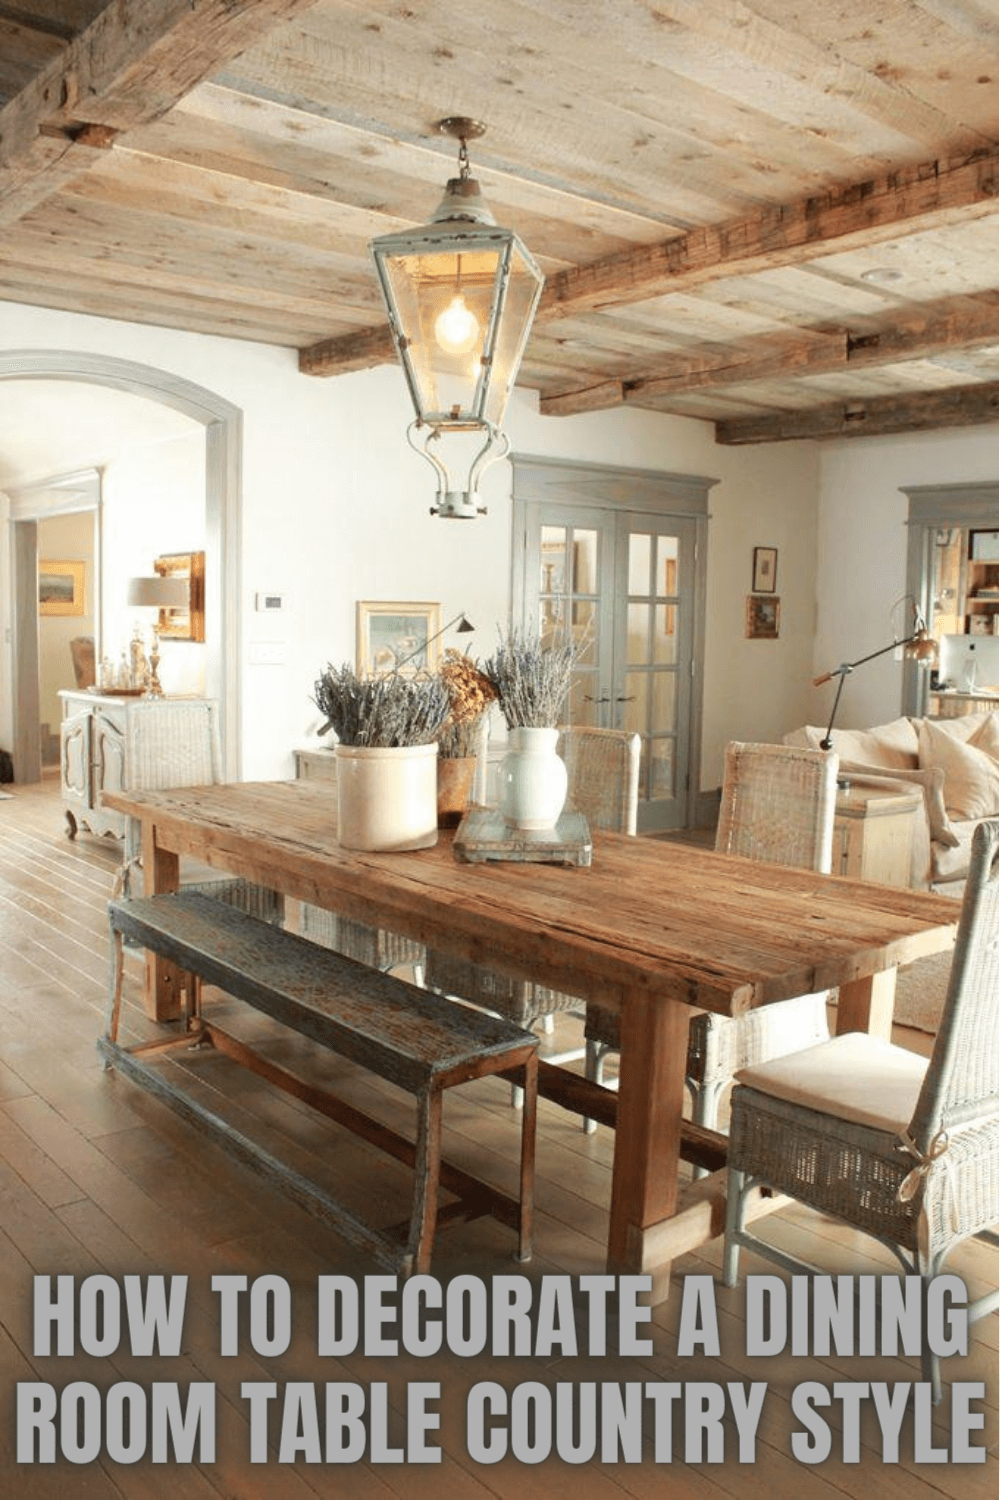 HOW TO DECORATE A DINING ROOM TABLE COUNTRY STYLE